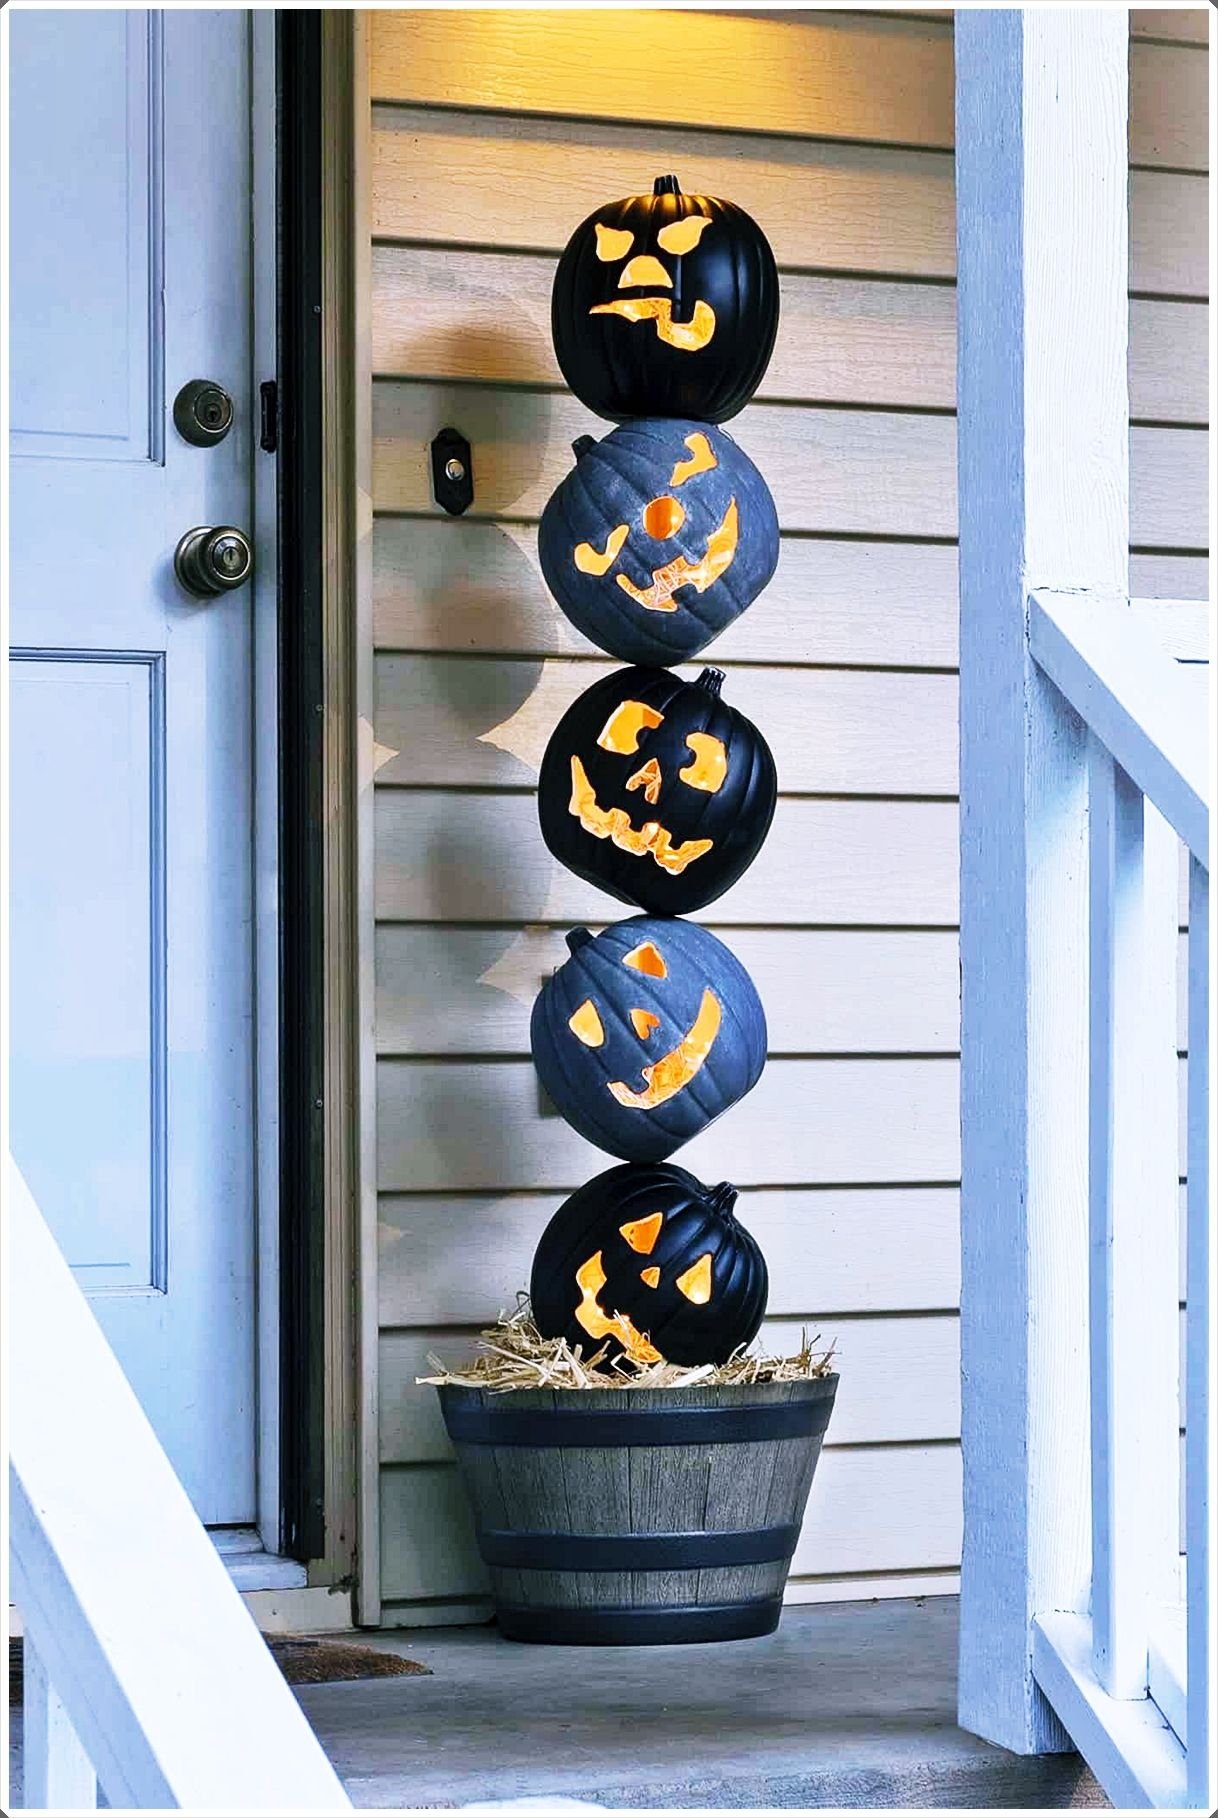 2020 Halloween Decorations Frontgate Halloween Decorations Trends 2020 | Fall halloween decor